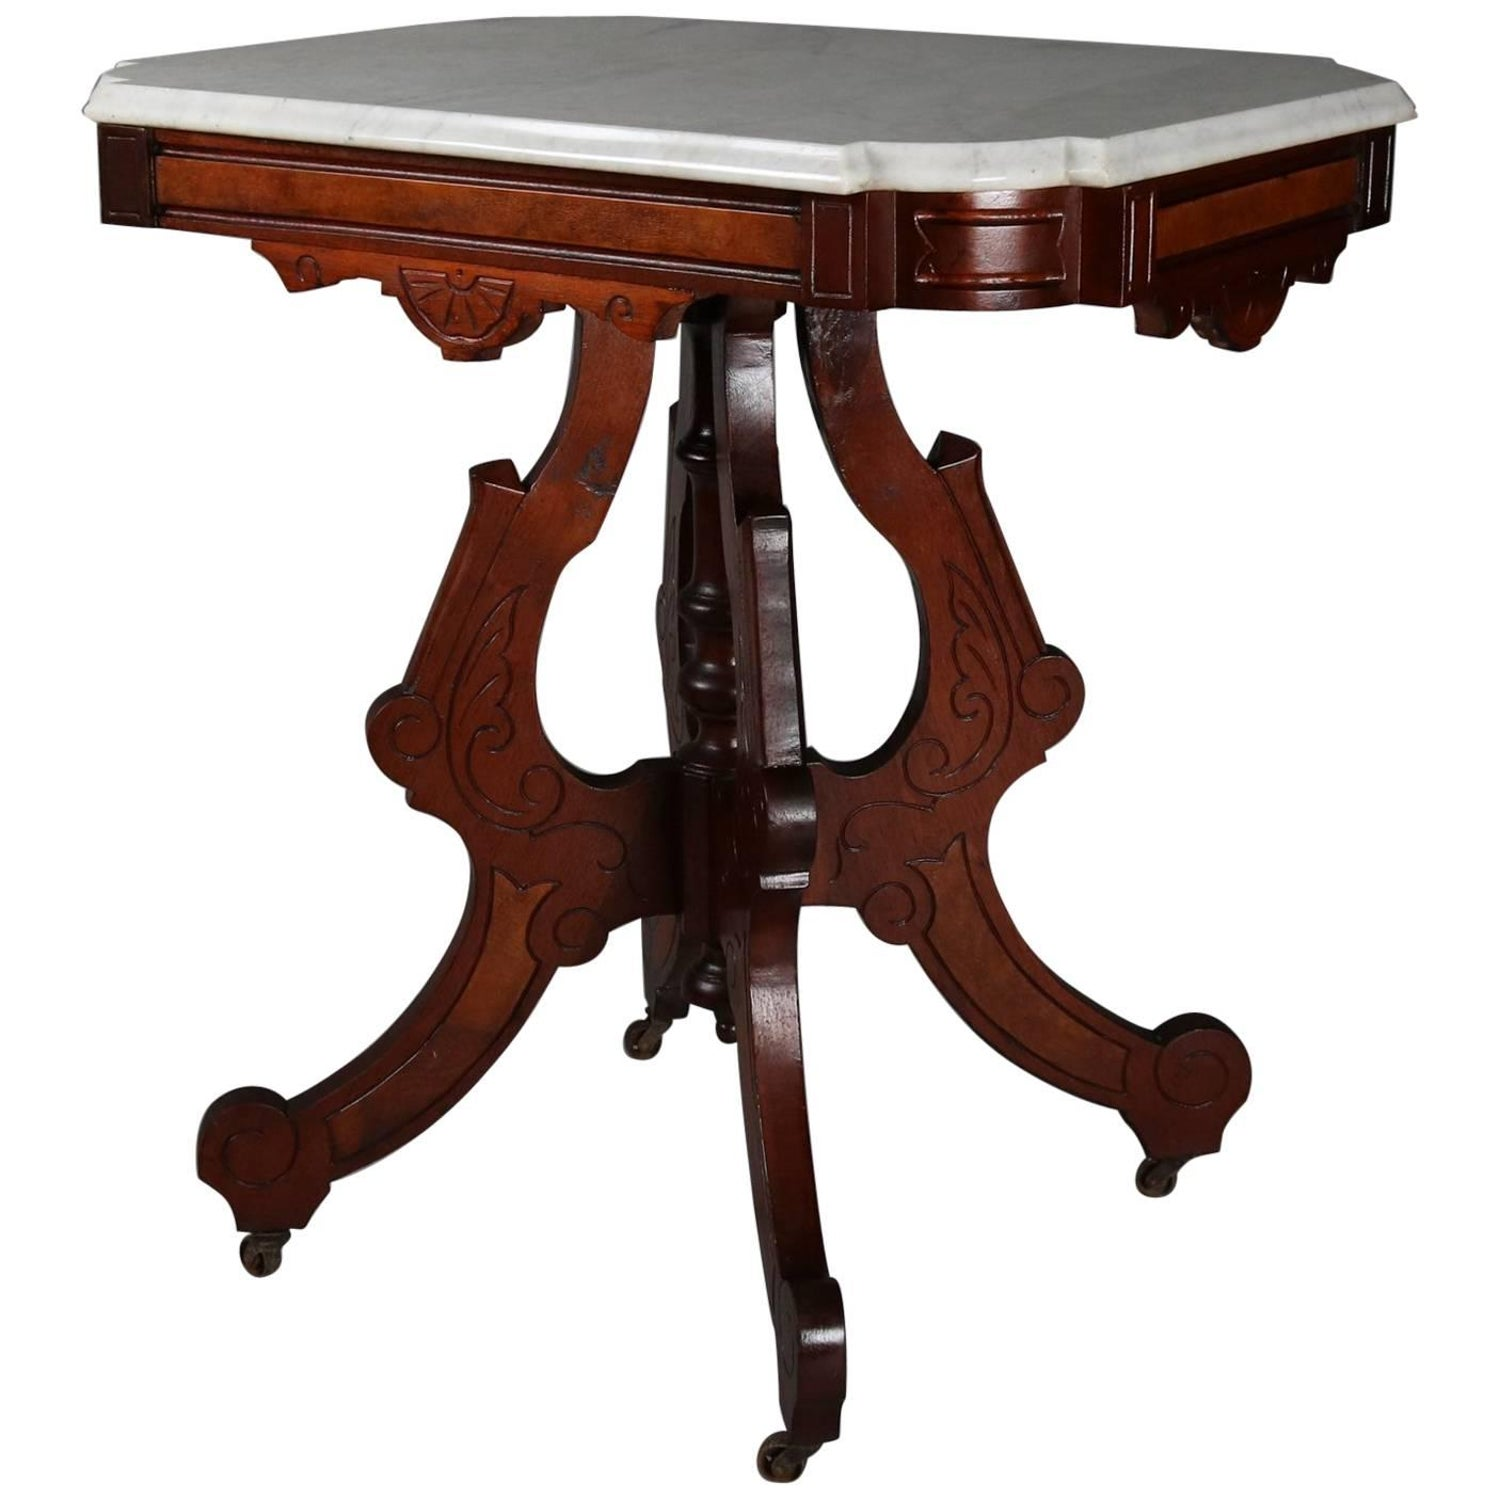 Petite Walnut Victorian Table With Marble Top circa 1870s at 1stdibs